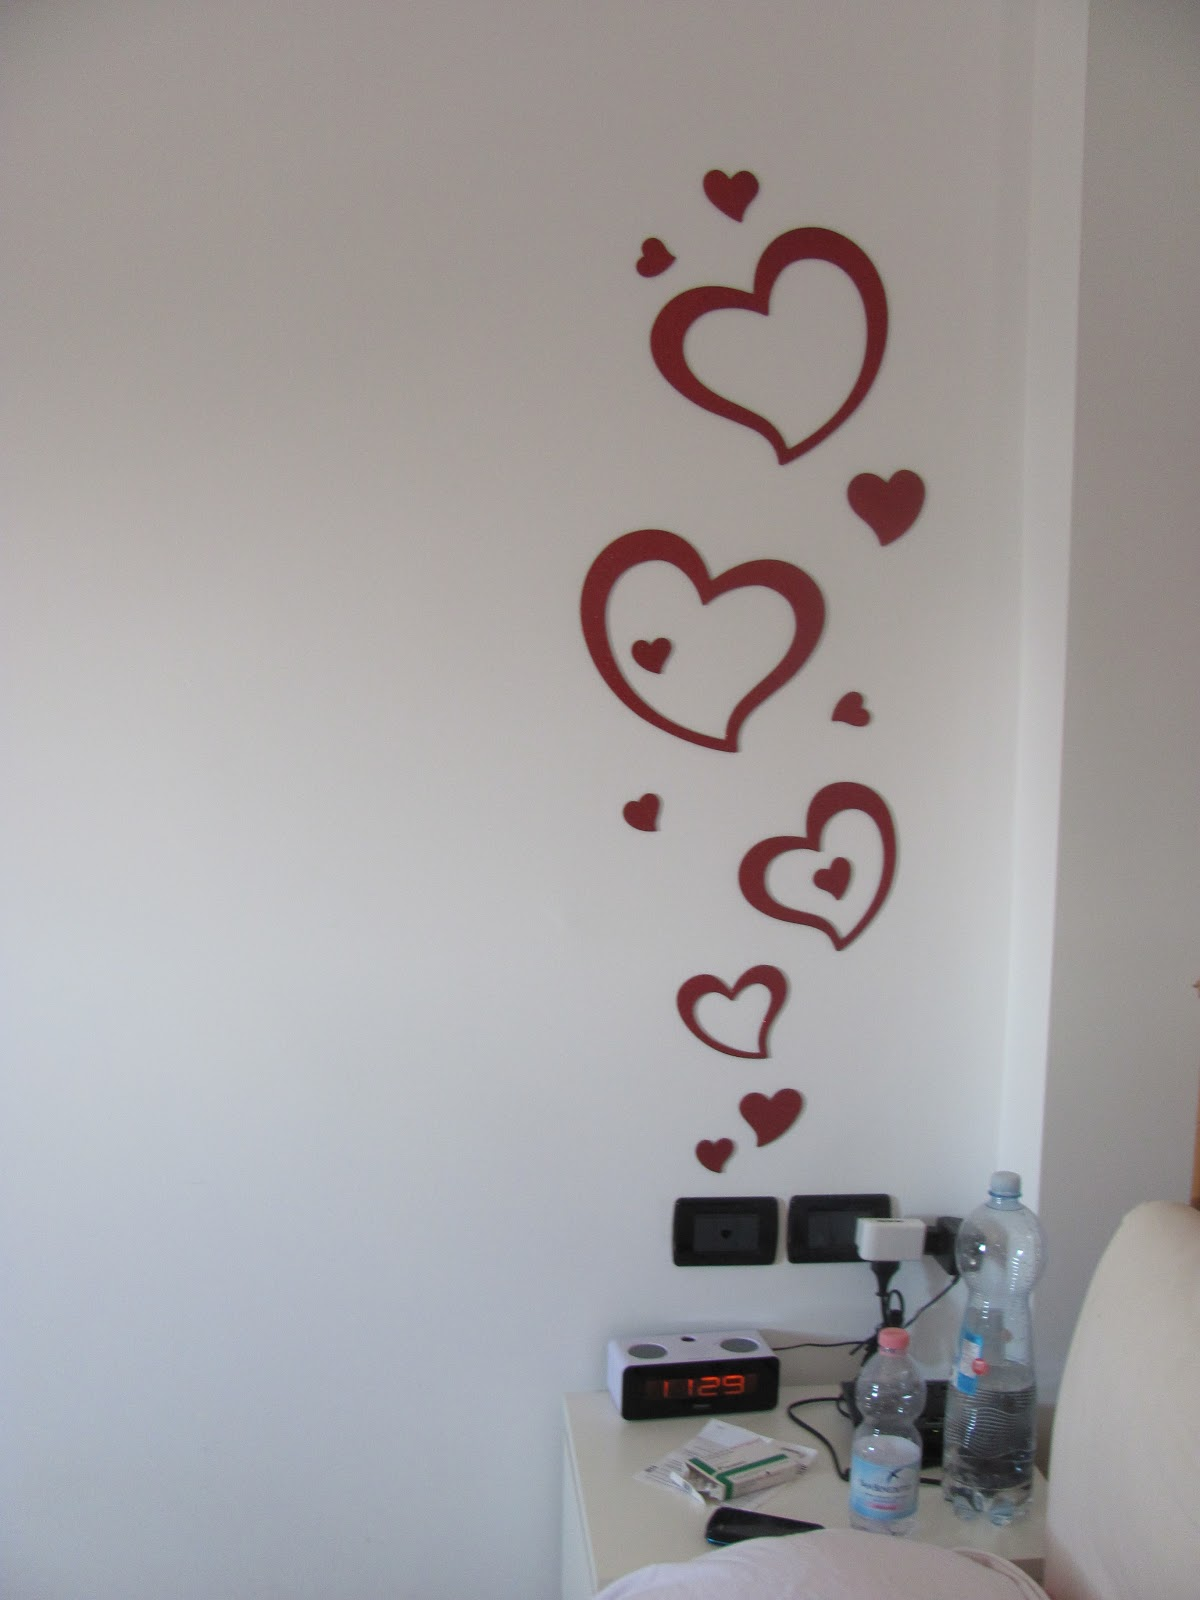 Creazioni valey sticker e stencil - Stickers per camera da letto ...